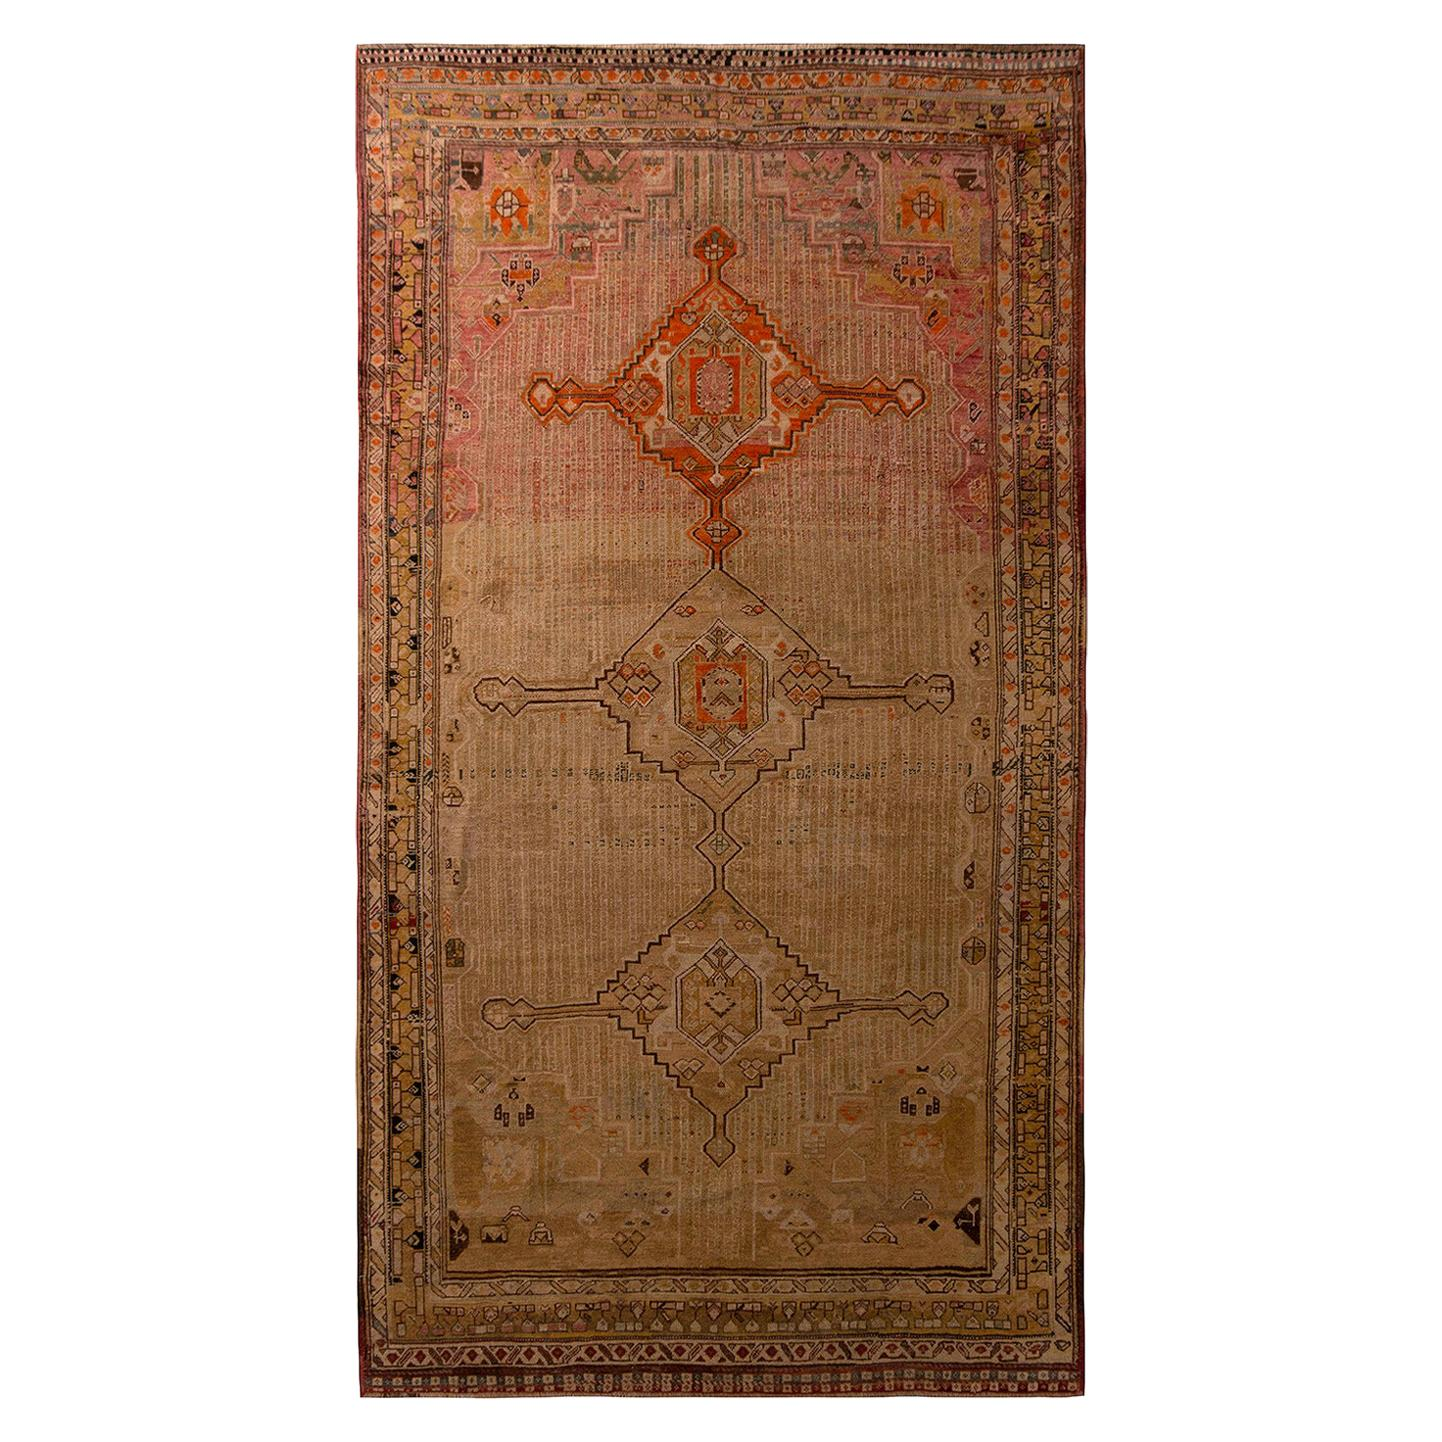 Antique Geometric Beige Pink and Red Wool Qashqai Persian Rug